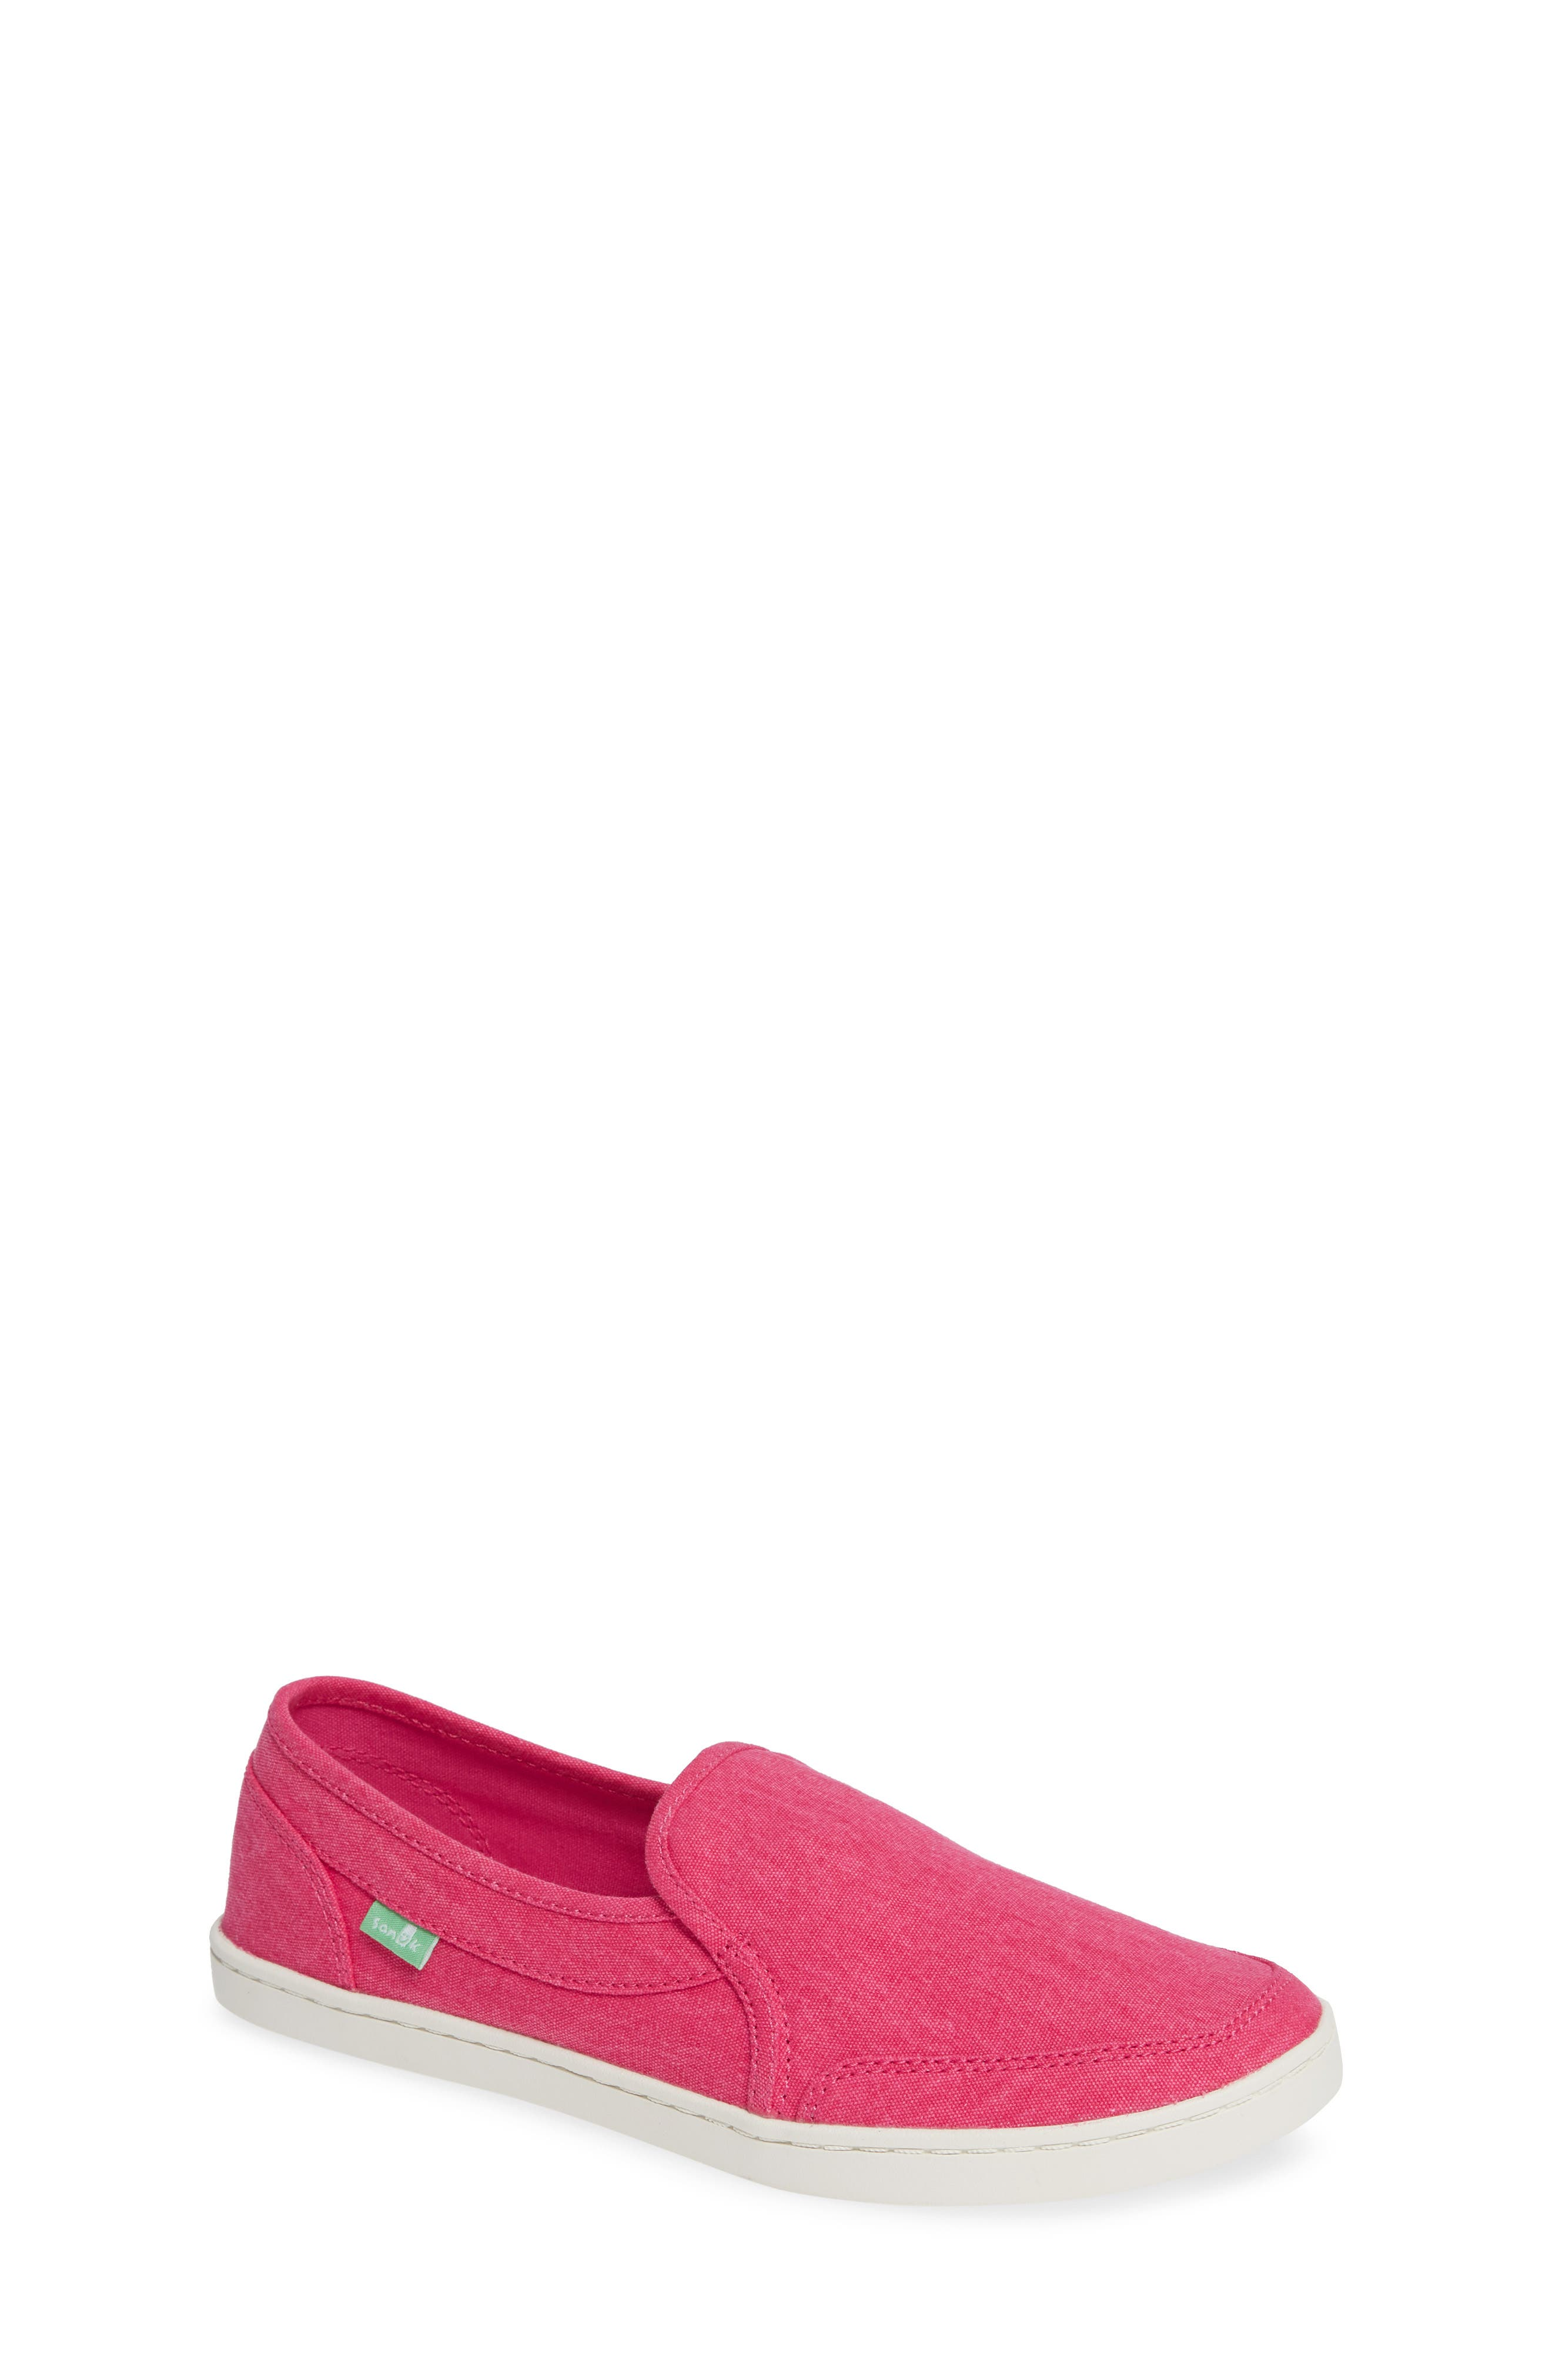 Pair O Dice Slip-On,                         Main,                         color, Washed Cabaret